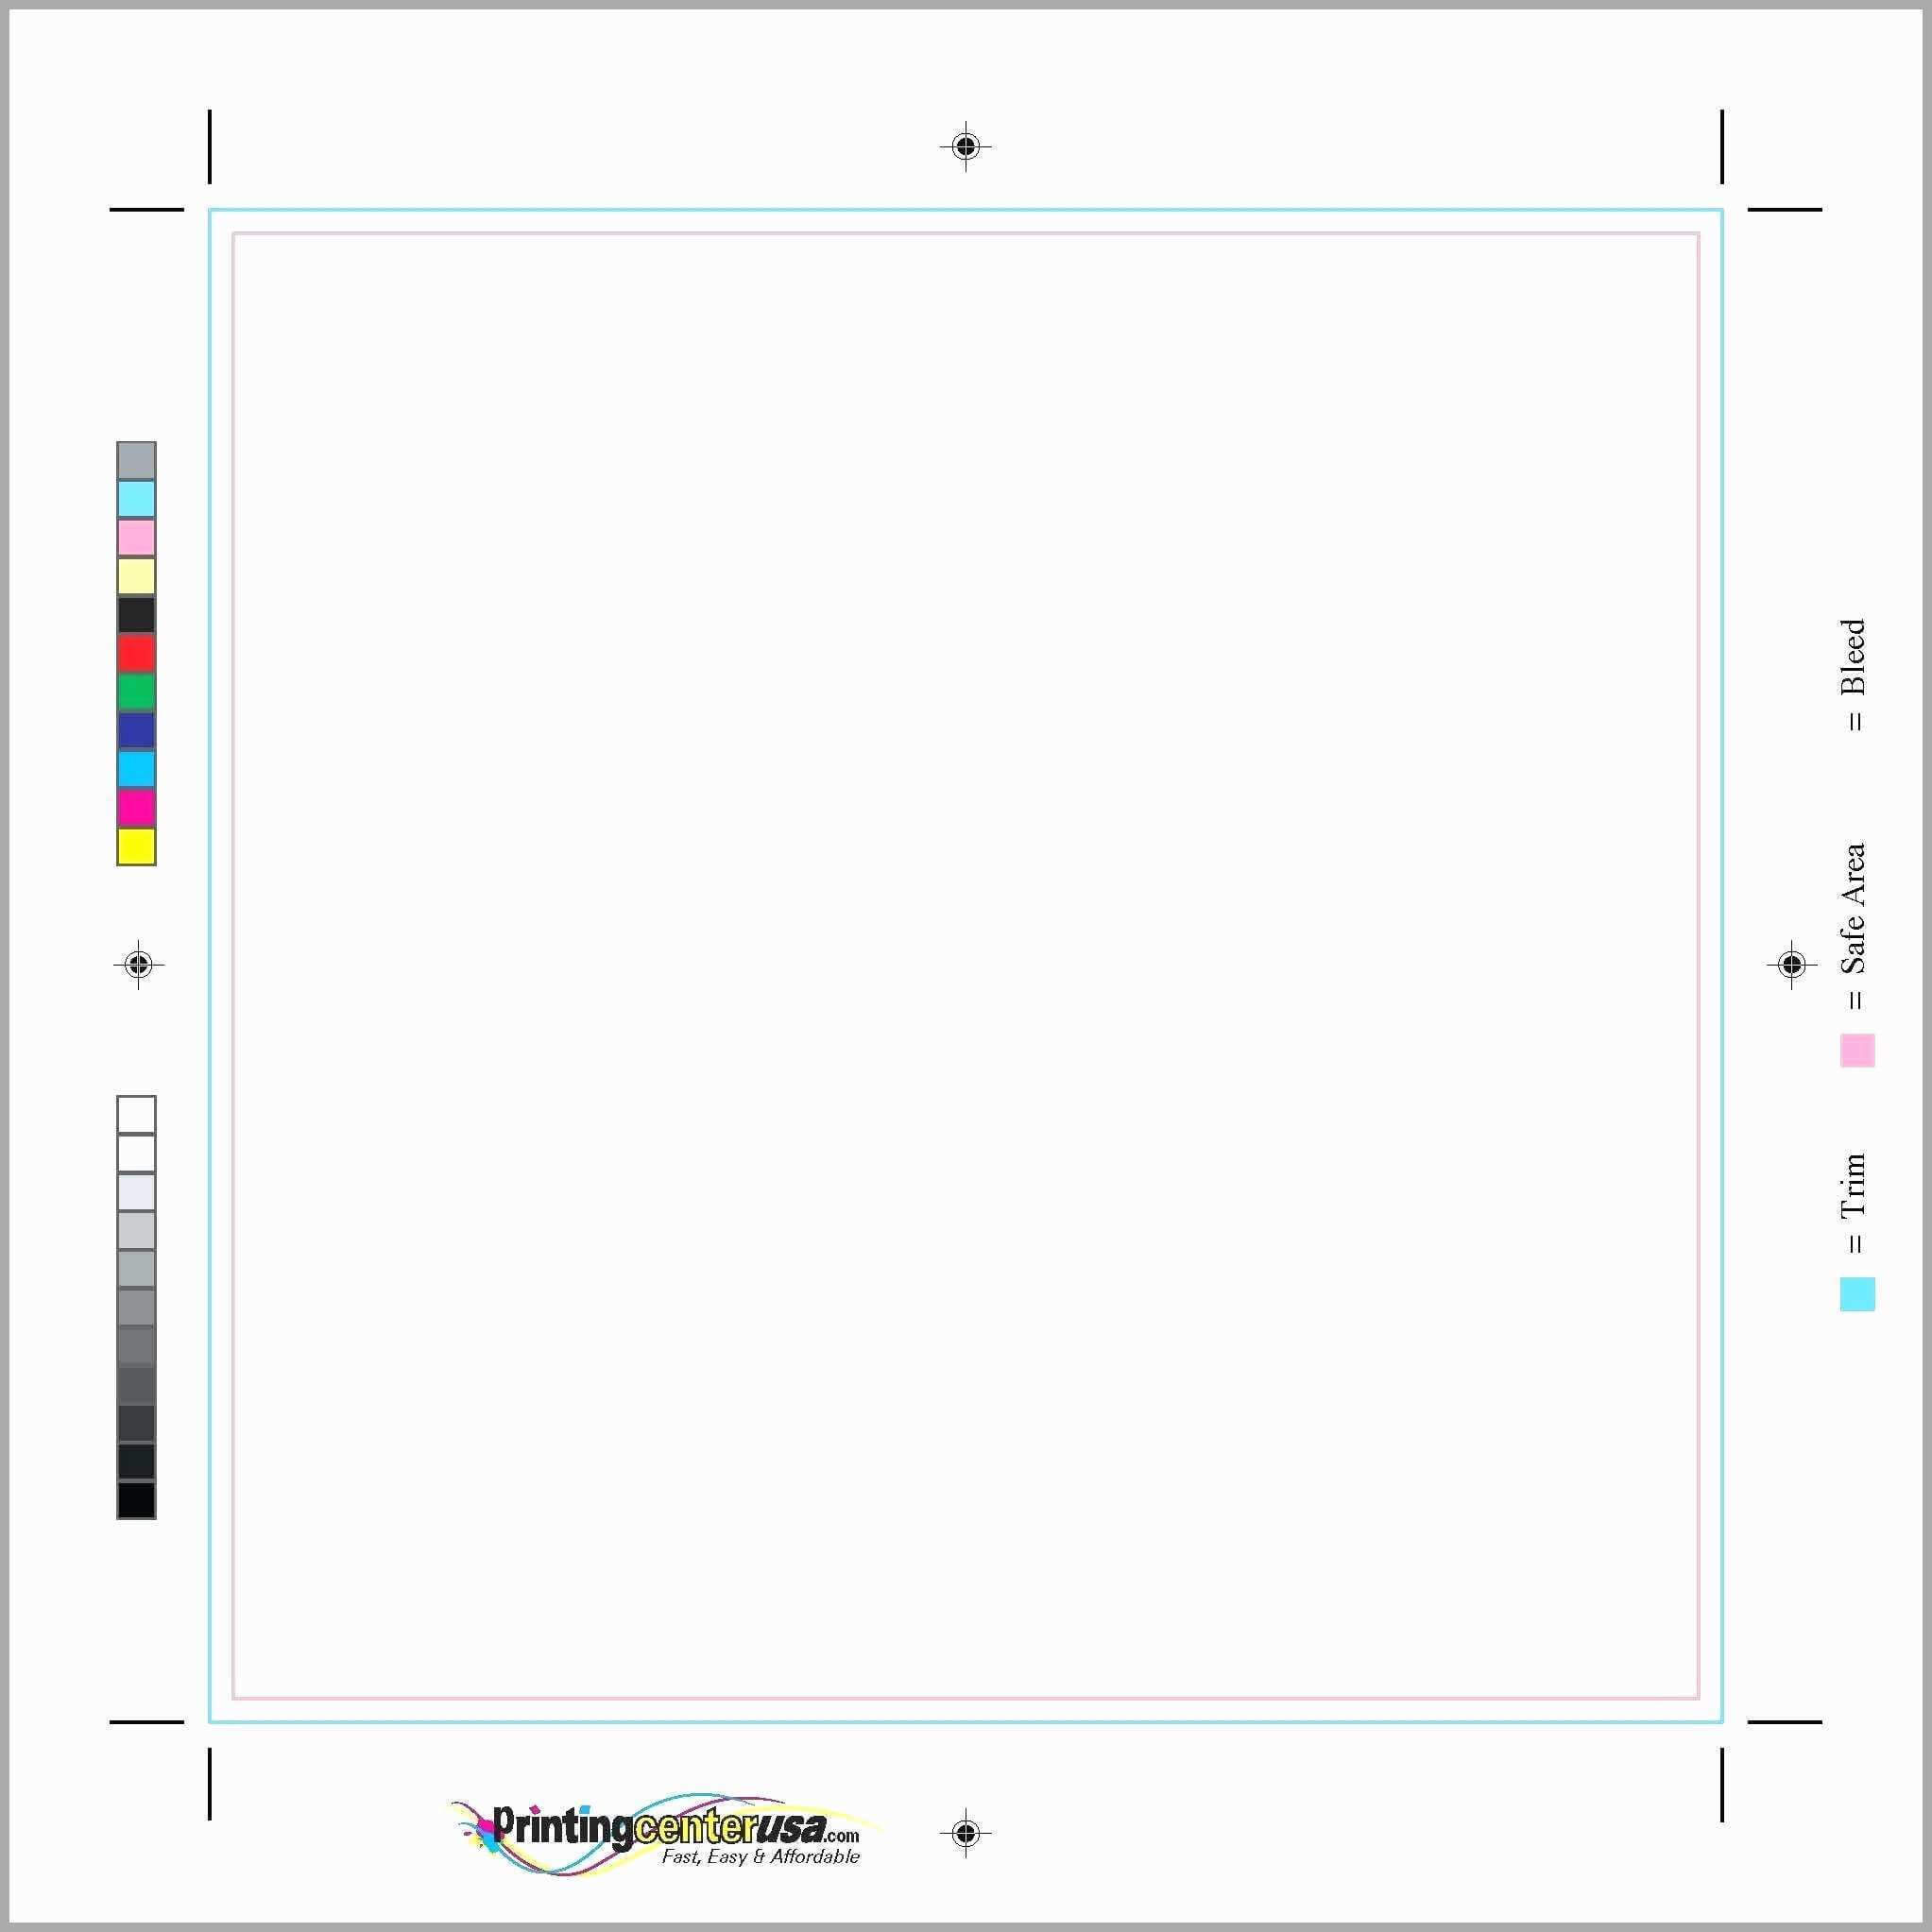 Amazing 5X8 Index Card Template Free – Www.szf.se Throughout 5 By 8 Index Card Template